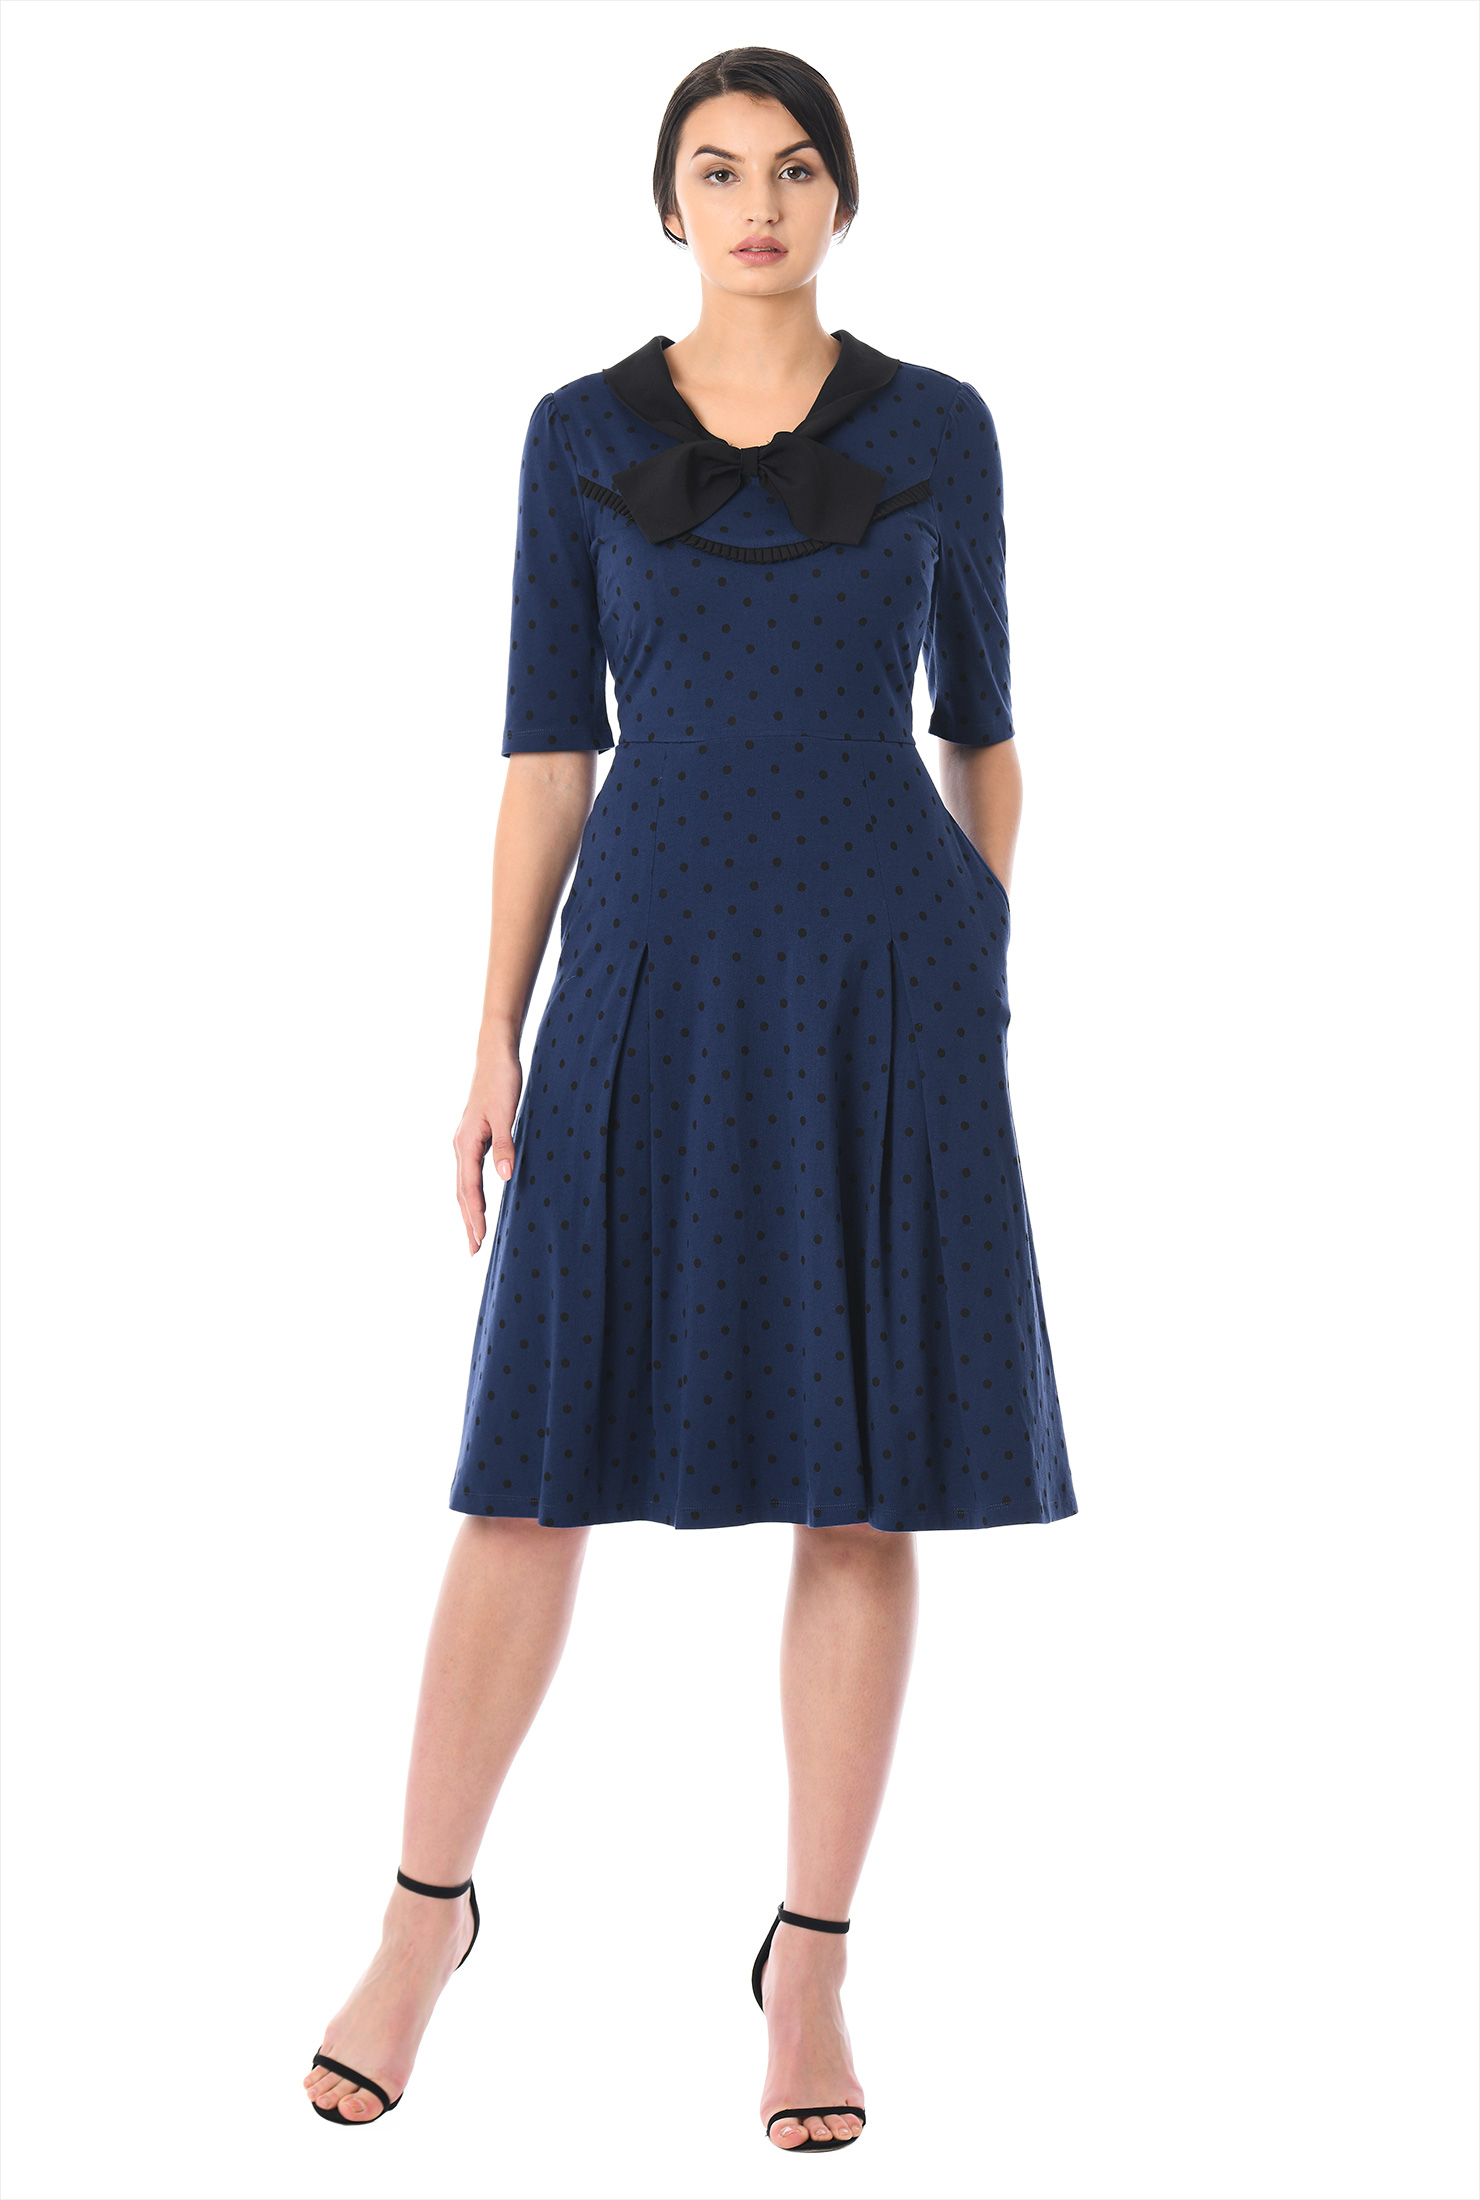 eShakti Women's Bow tie polka dot print cotton knit dress